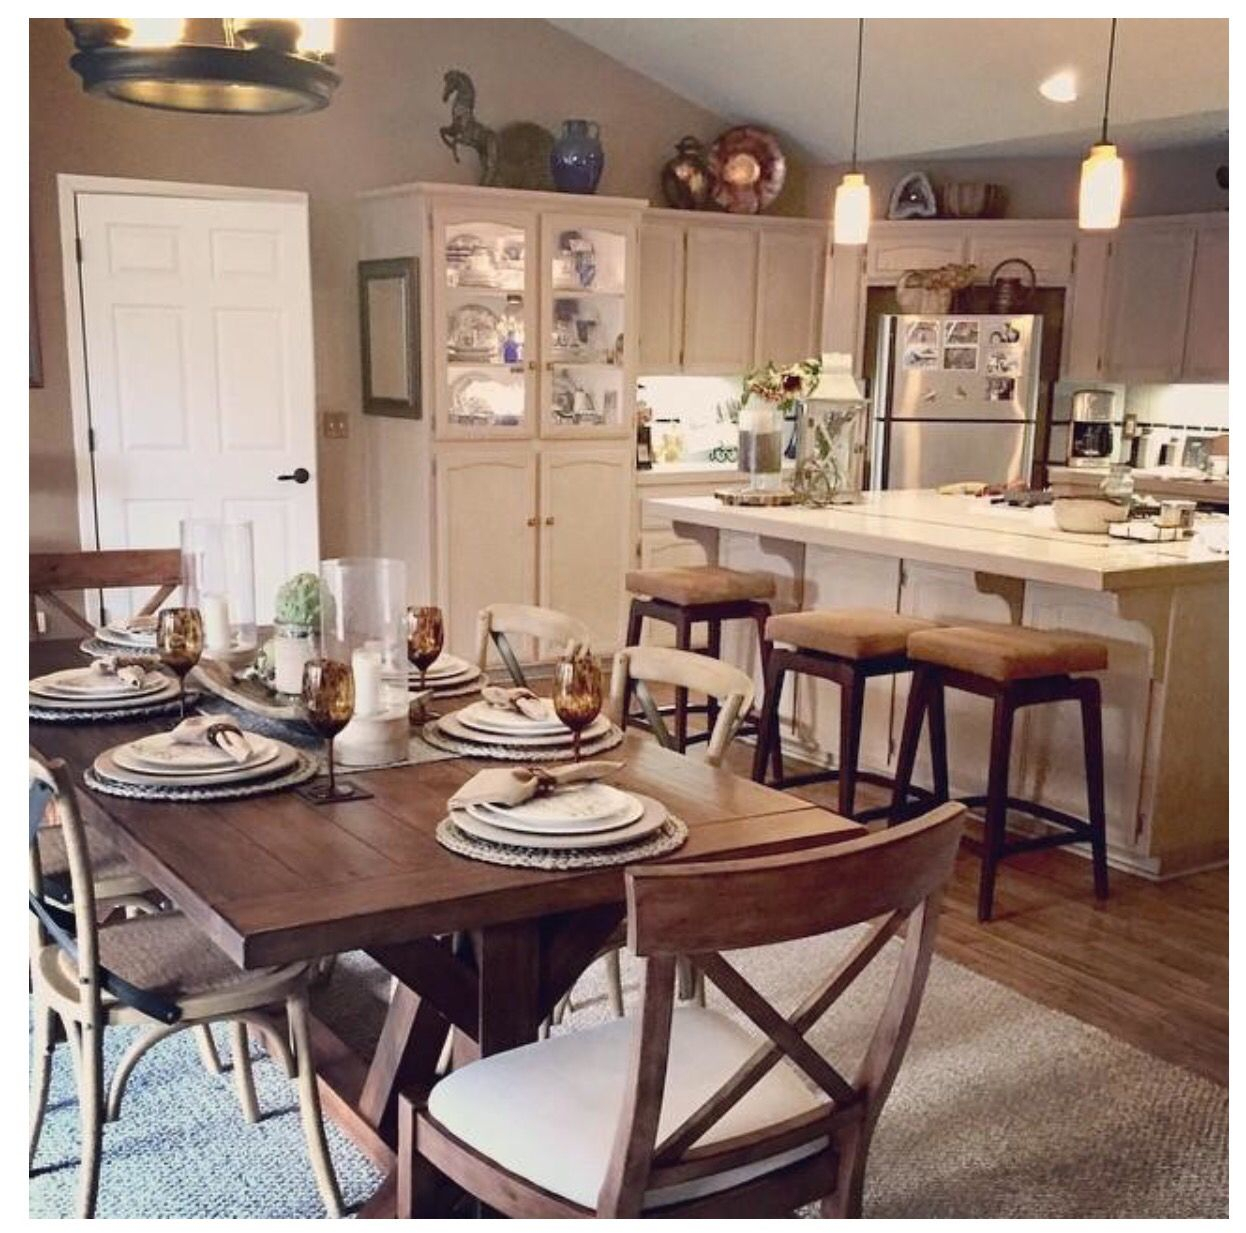 Pottery Barn: Toscana Extending Dining Table | Pottery Barn Intended For 2018 Seadrift Benchwright Extending Dining Tables (View 20 of 25)